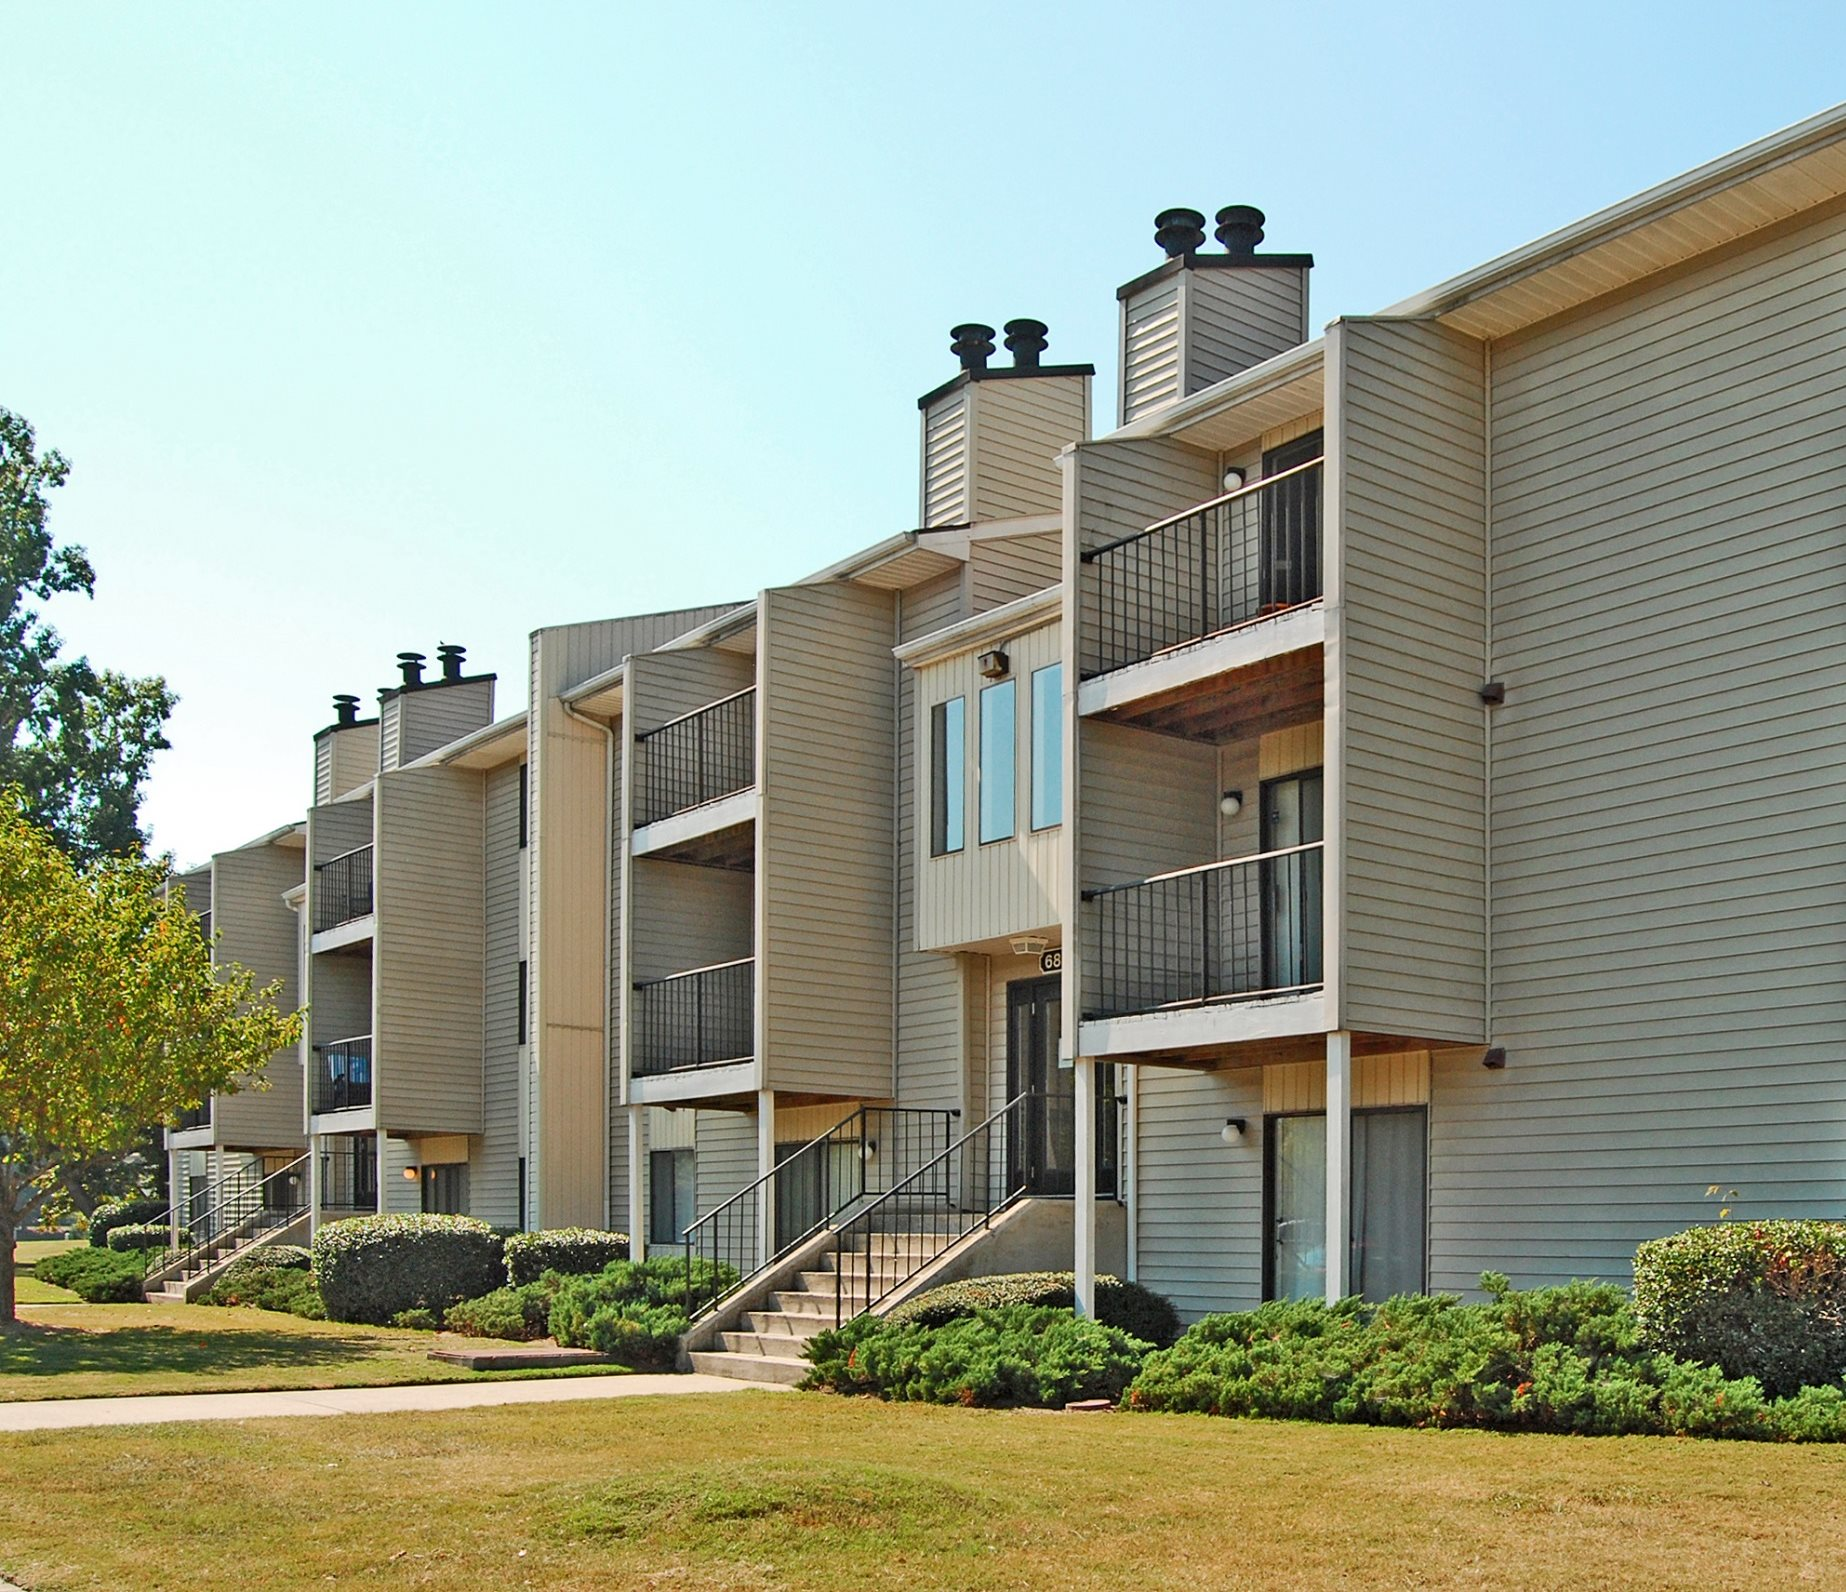 Apartments For Rent Fayetteville Nc: Village At Cliffdale Apartments